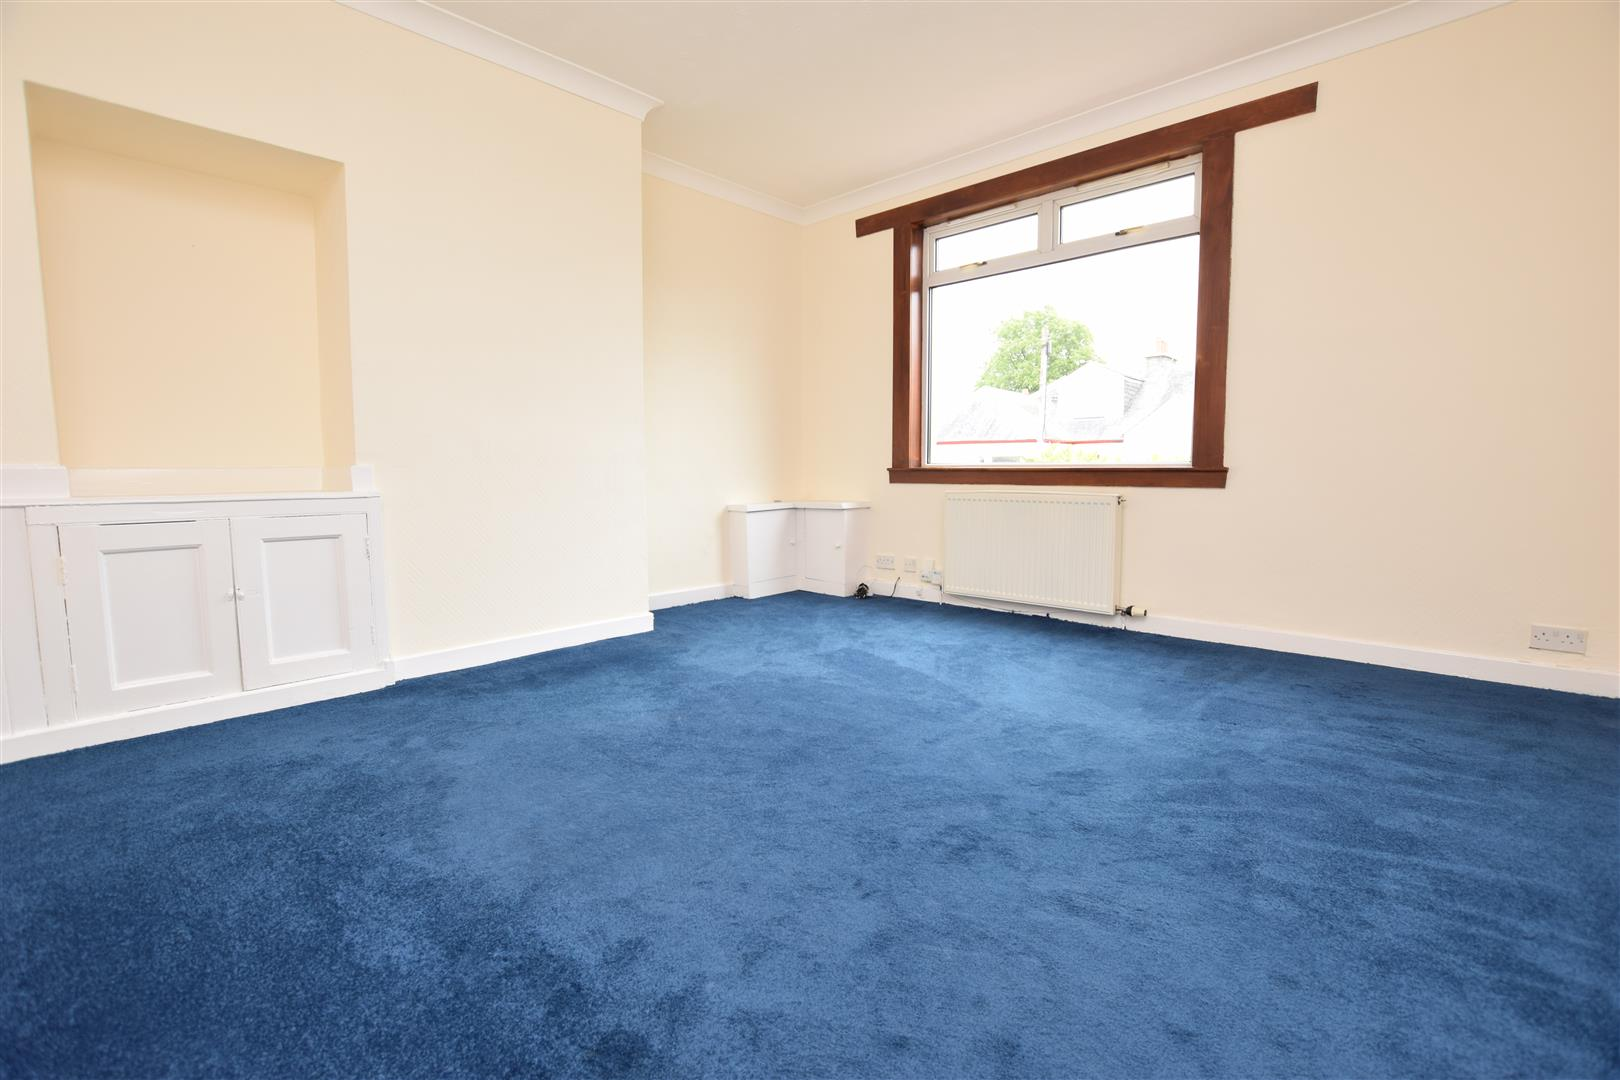 1A, Knowelea Place, Perth, Perthshire, PH2 0HG, UK